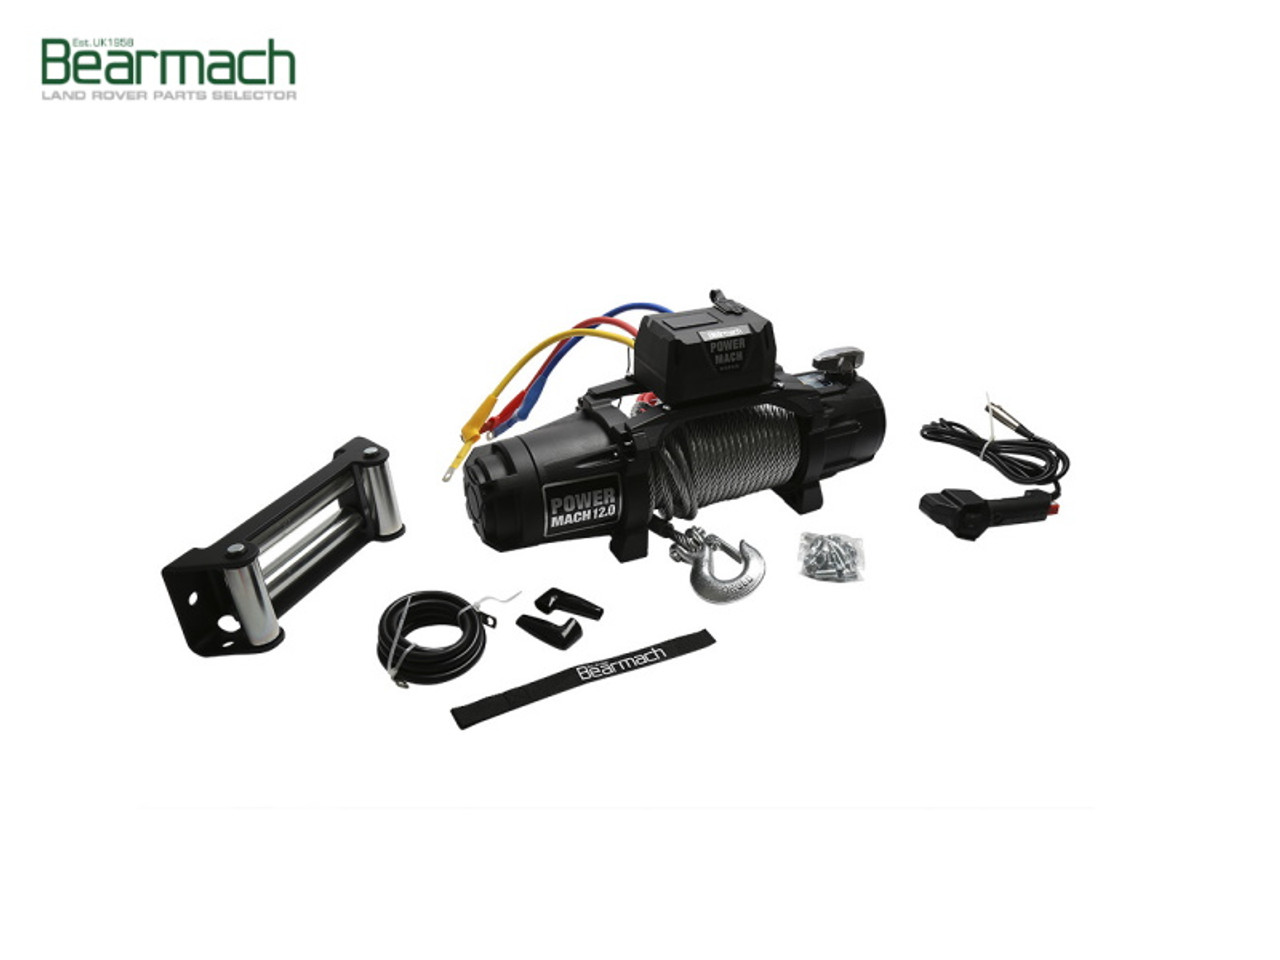 Bearmach Power Mach 12,000lb 12v Two Speed Winch With Synthetic Rope - BA 6002A